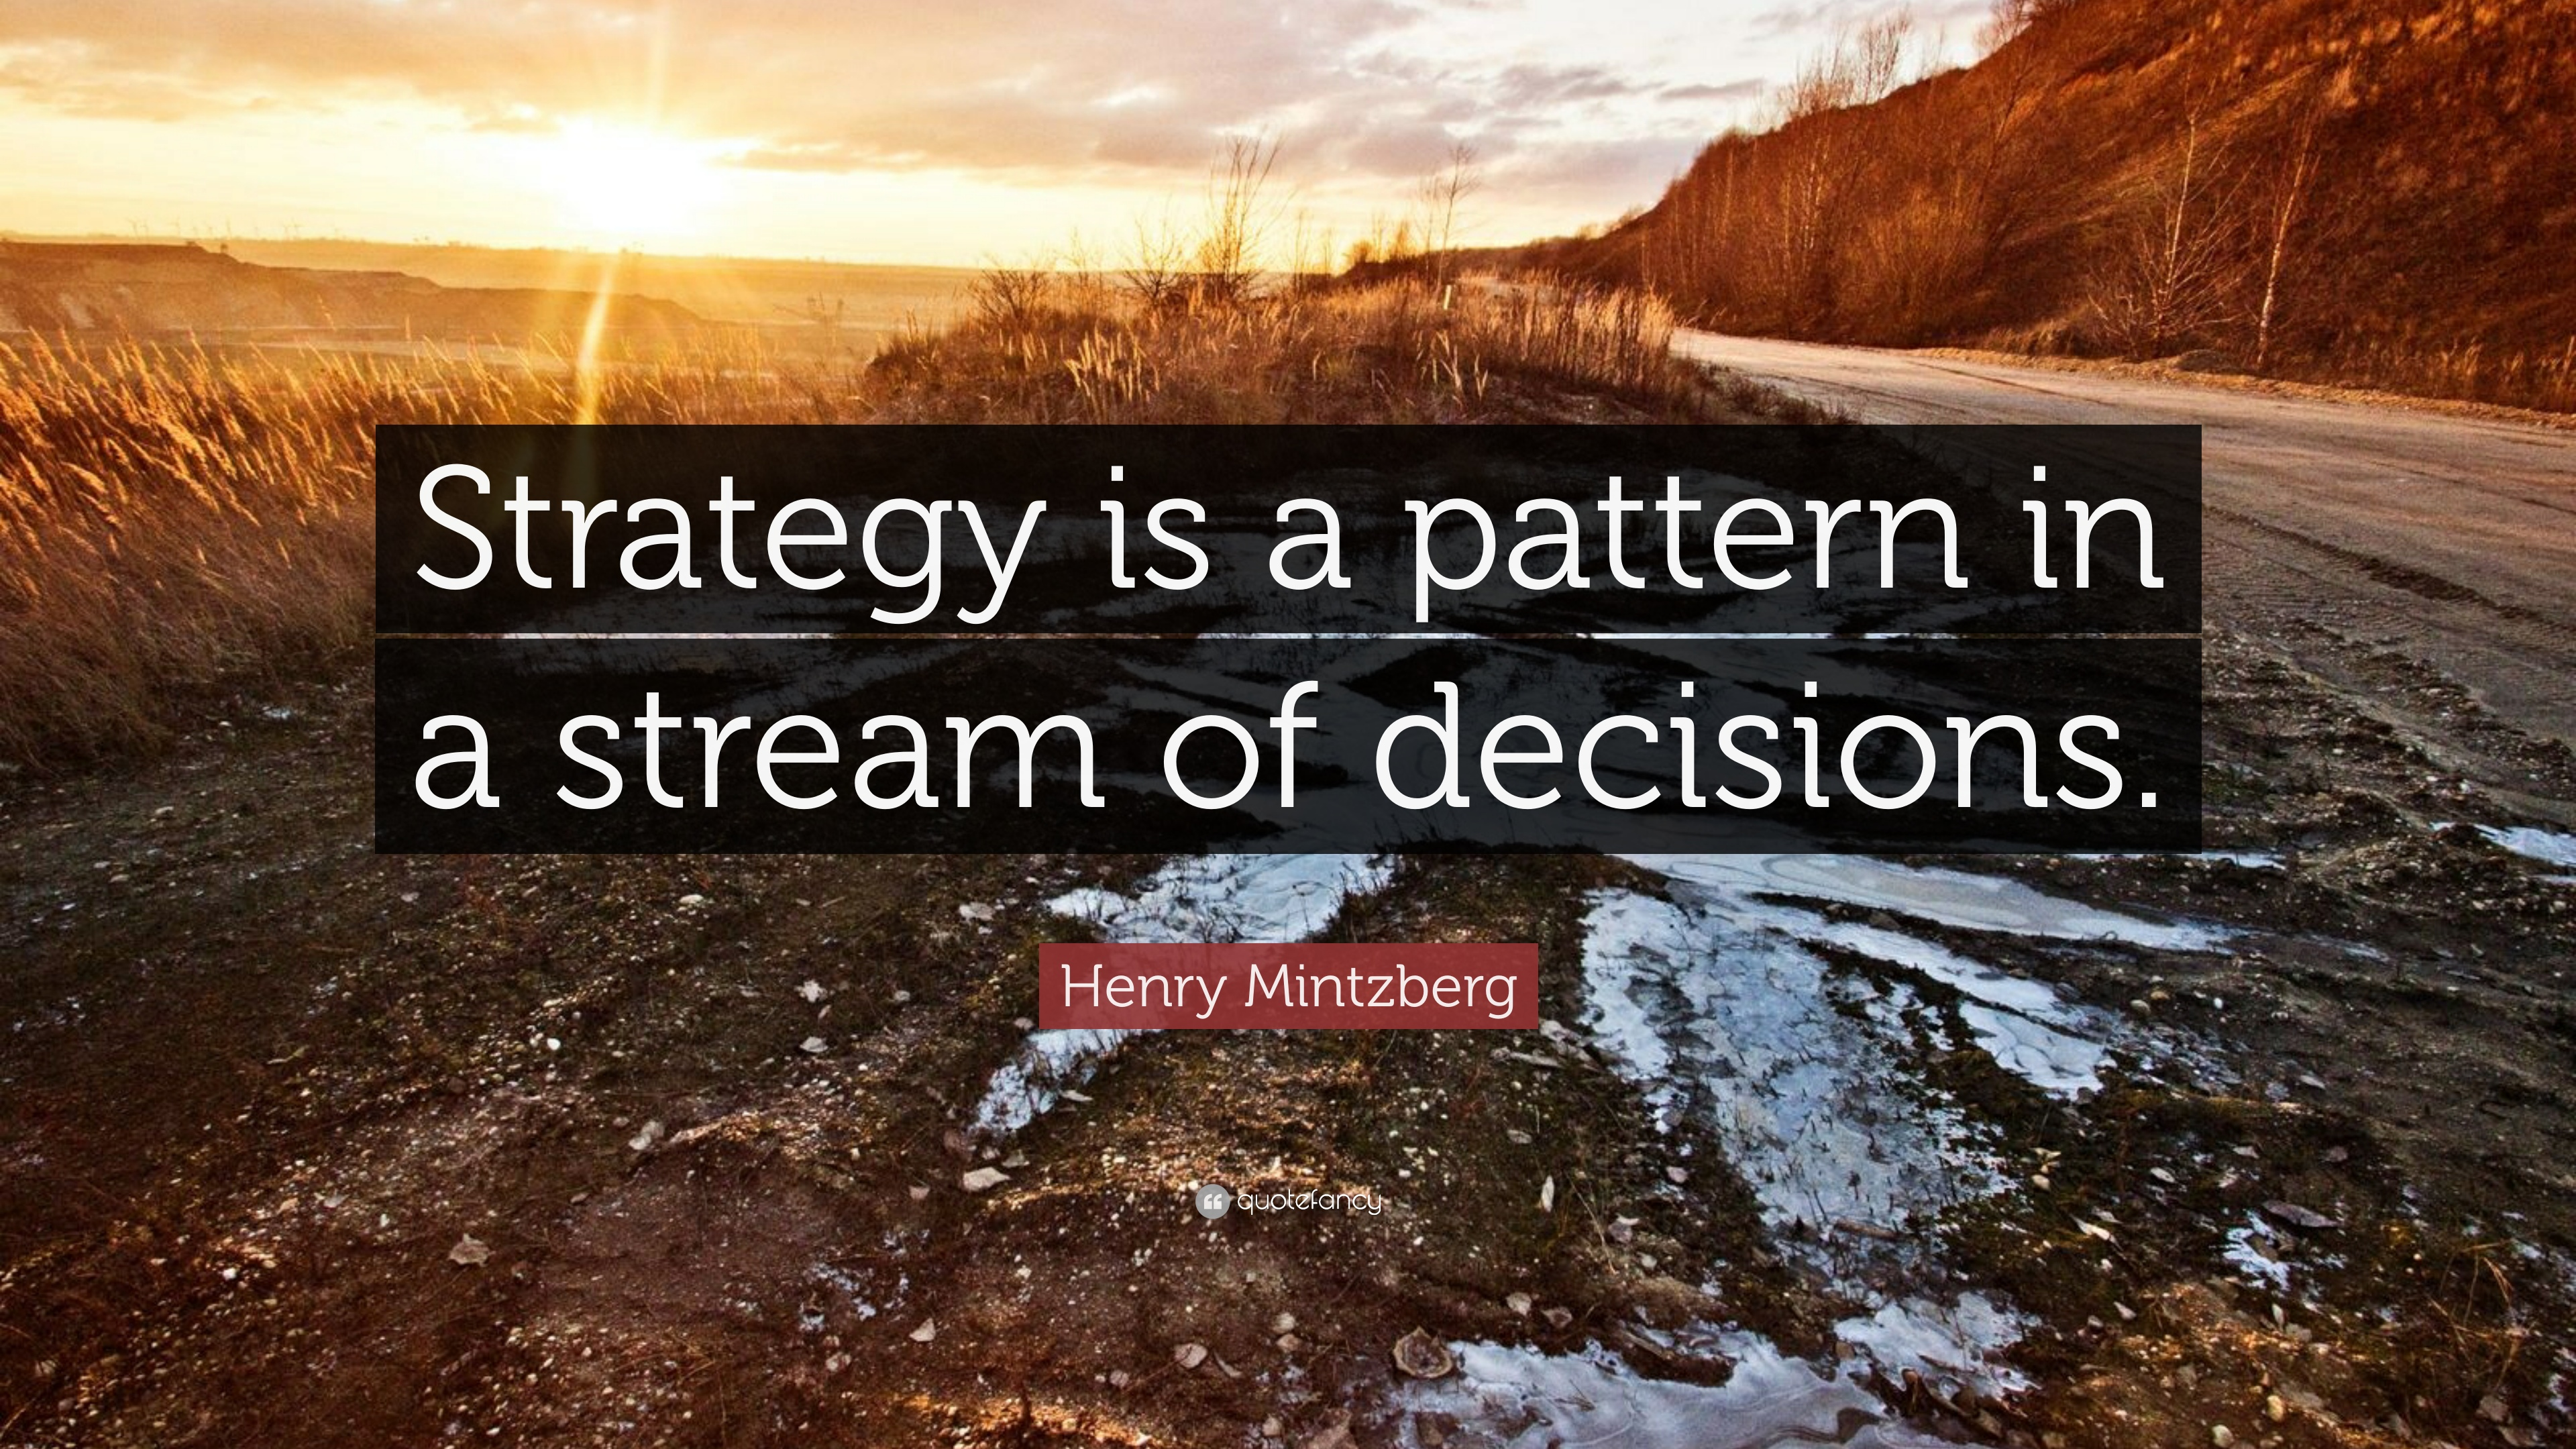 Decision Making: It's not what we think. It's also what we see. And what we do too.